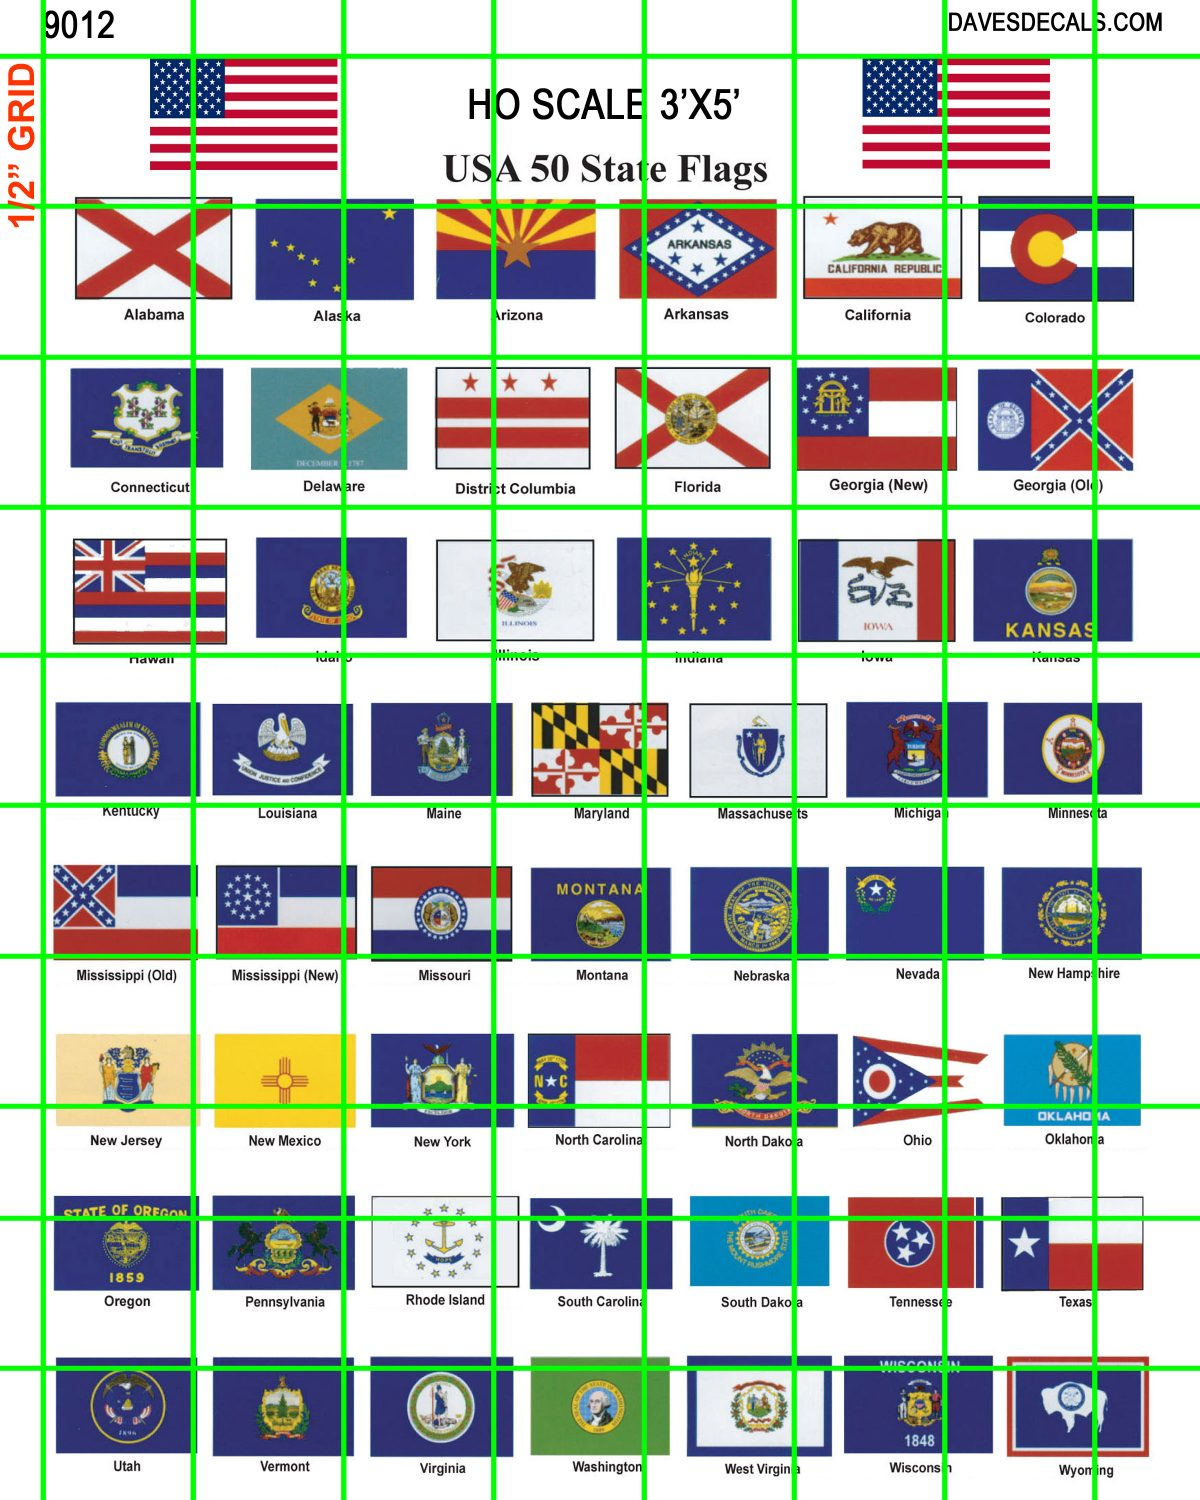 9012 misc signage united states state flags dave s decals